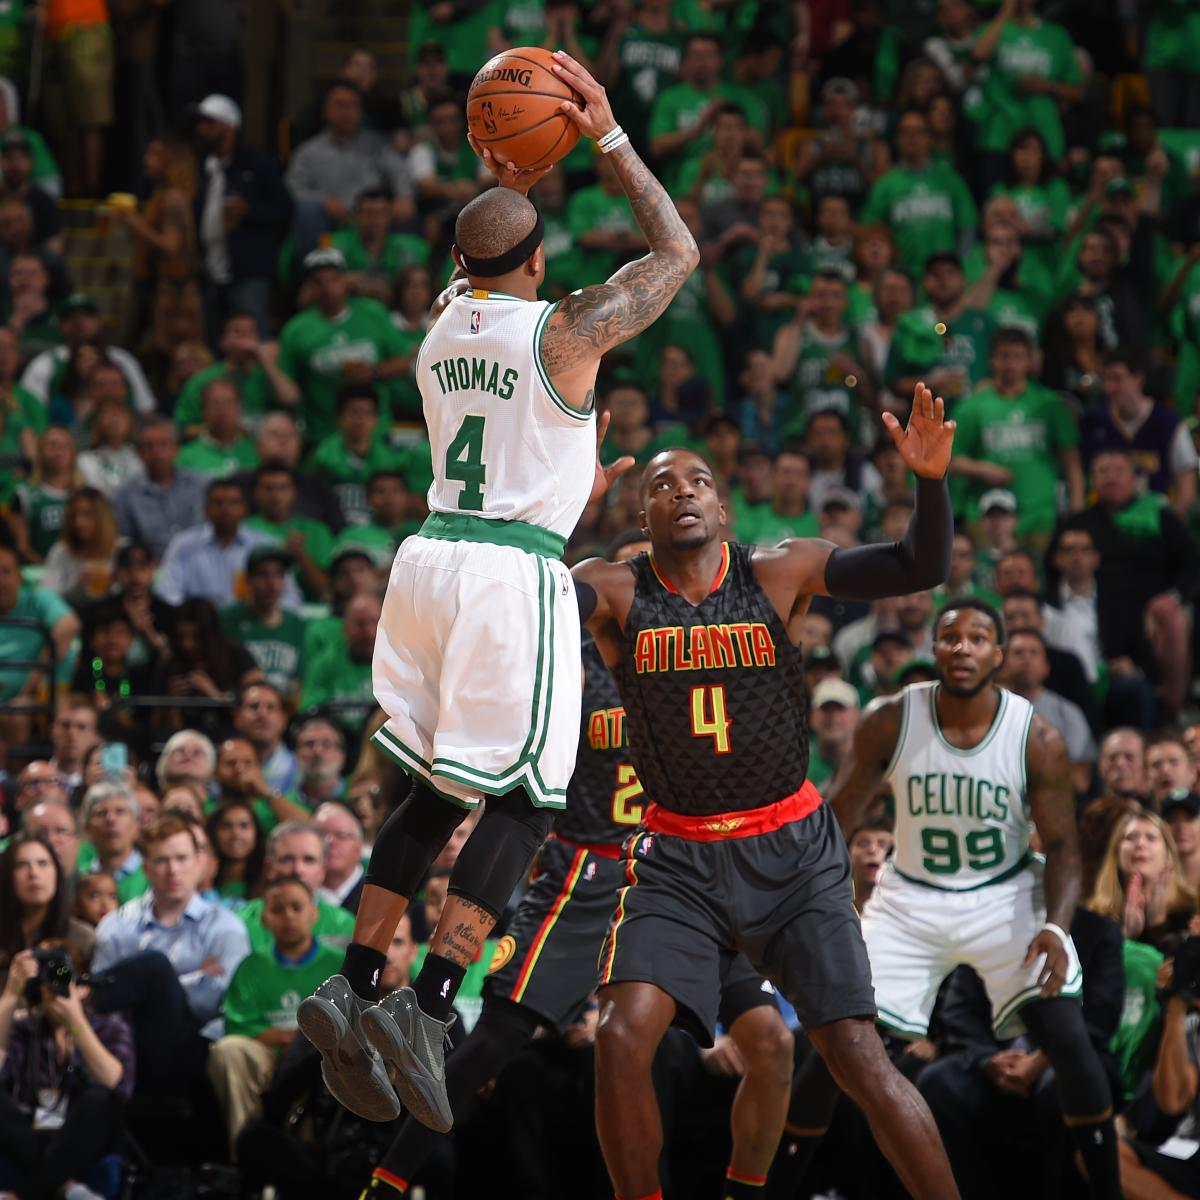 Celtic Score: Hawks Vs. Celtics: Game 3 Score And Twitter Reaction From